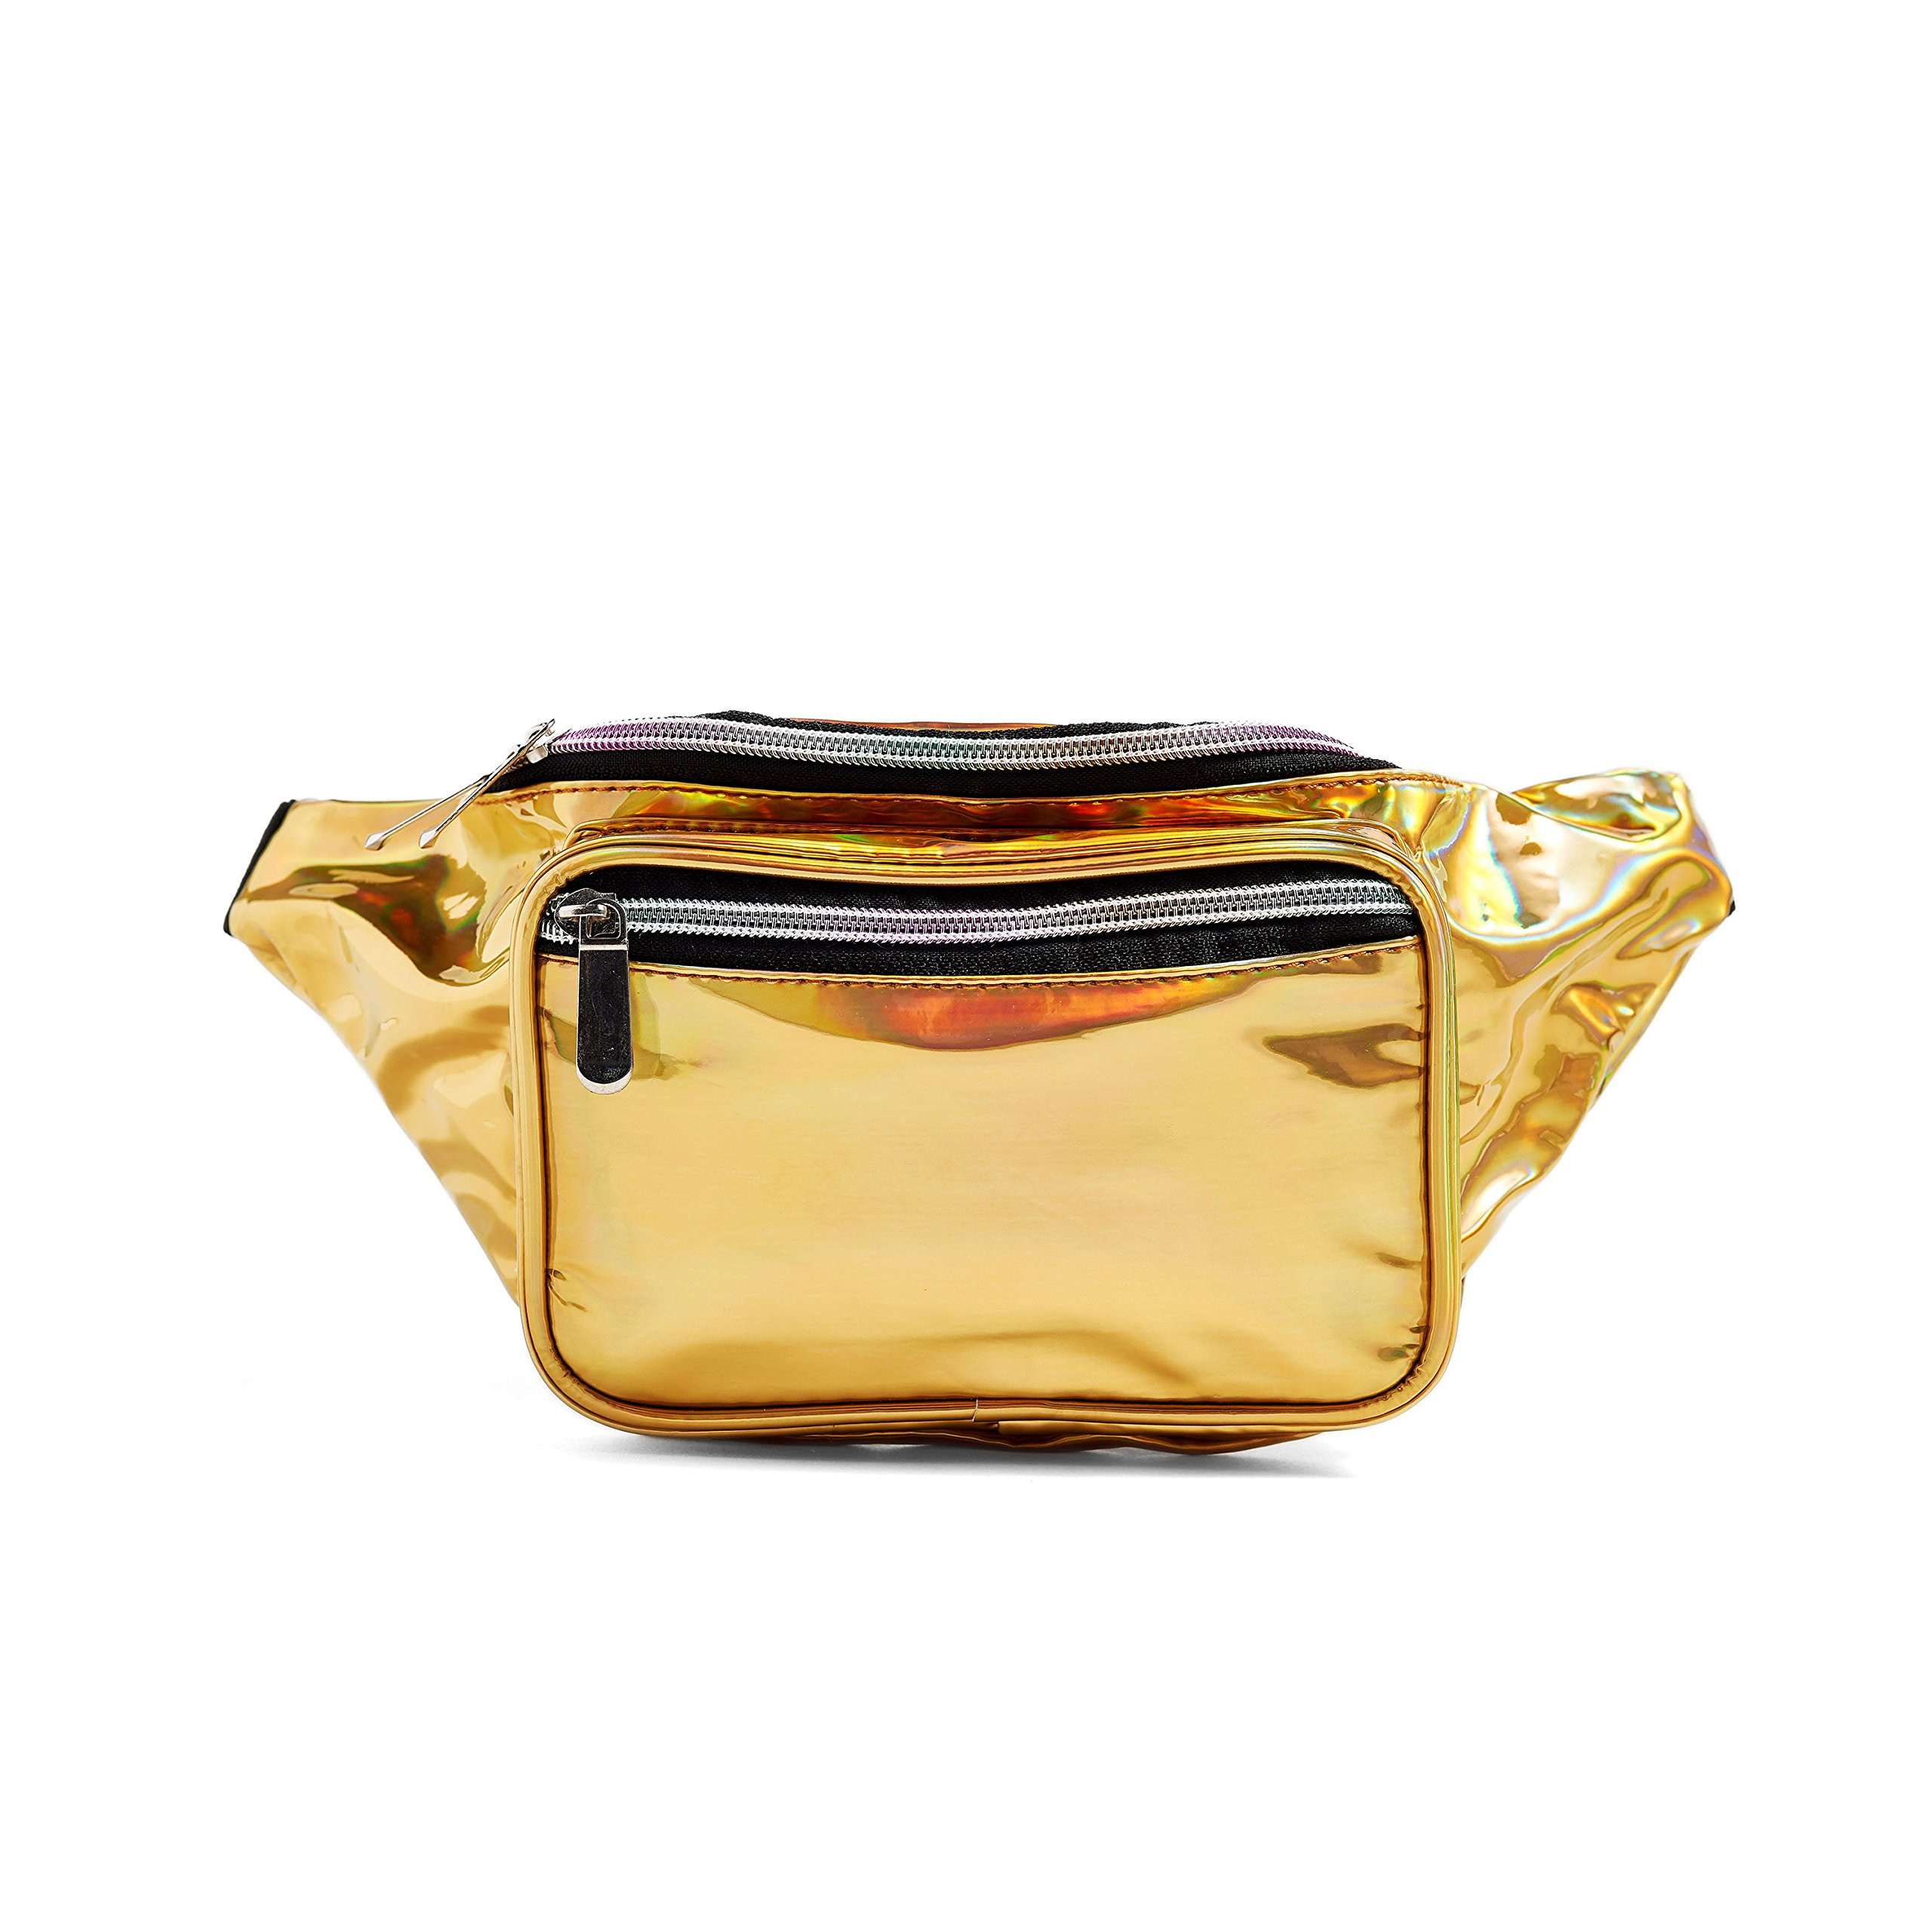 C.T.Soarsky Fanny Pack - Galaxy, Rave, Festival, Holographic Gold